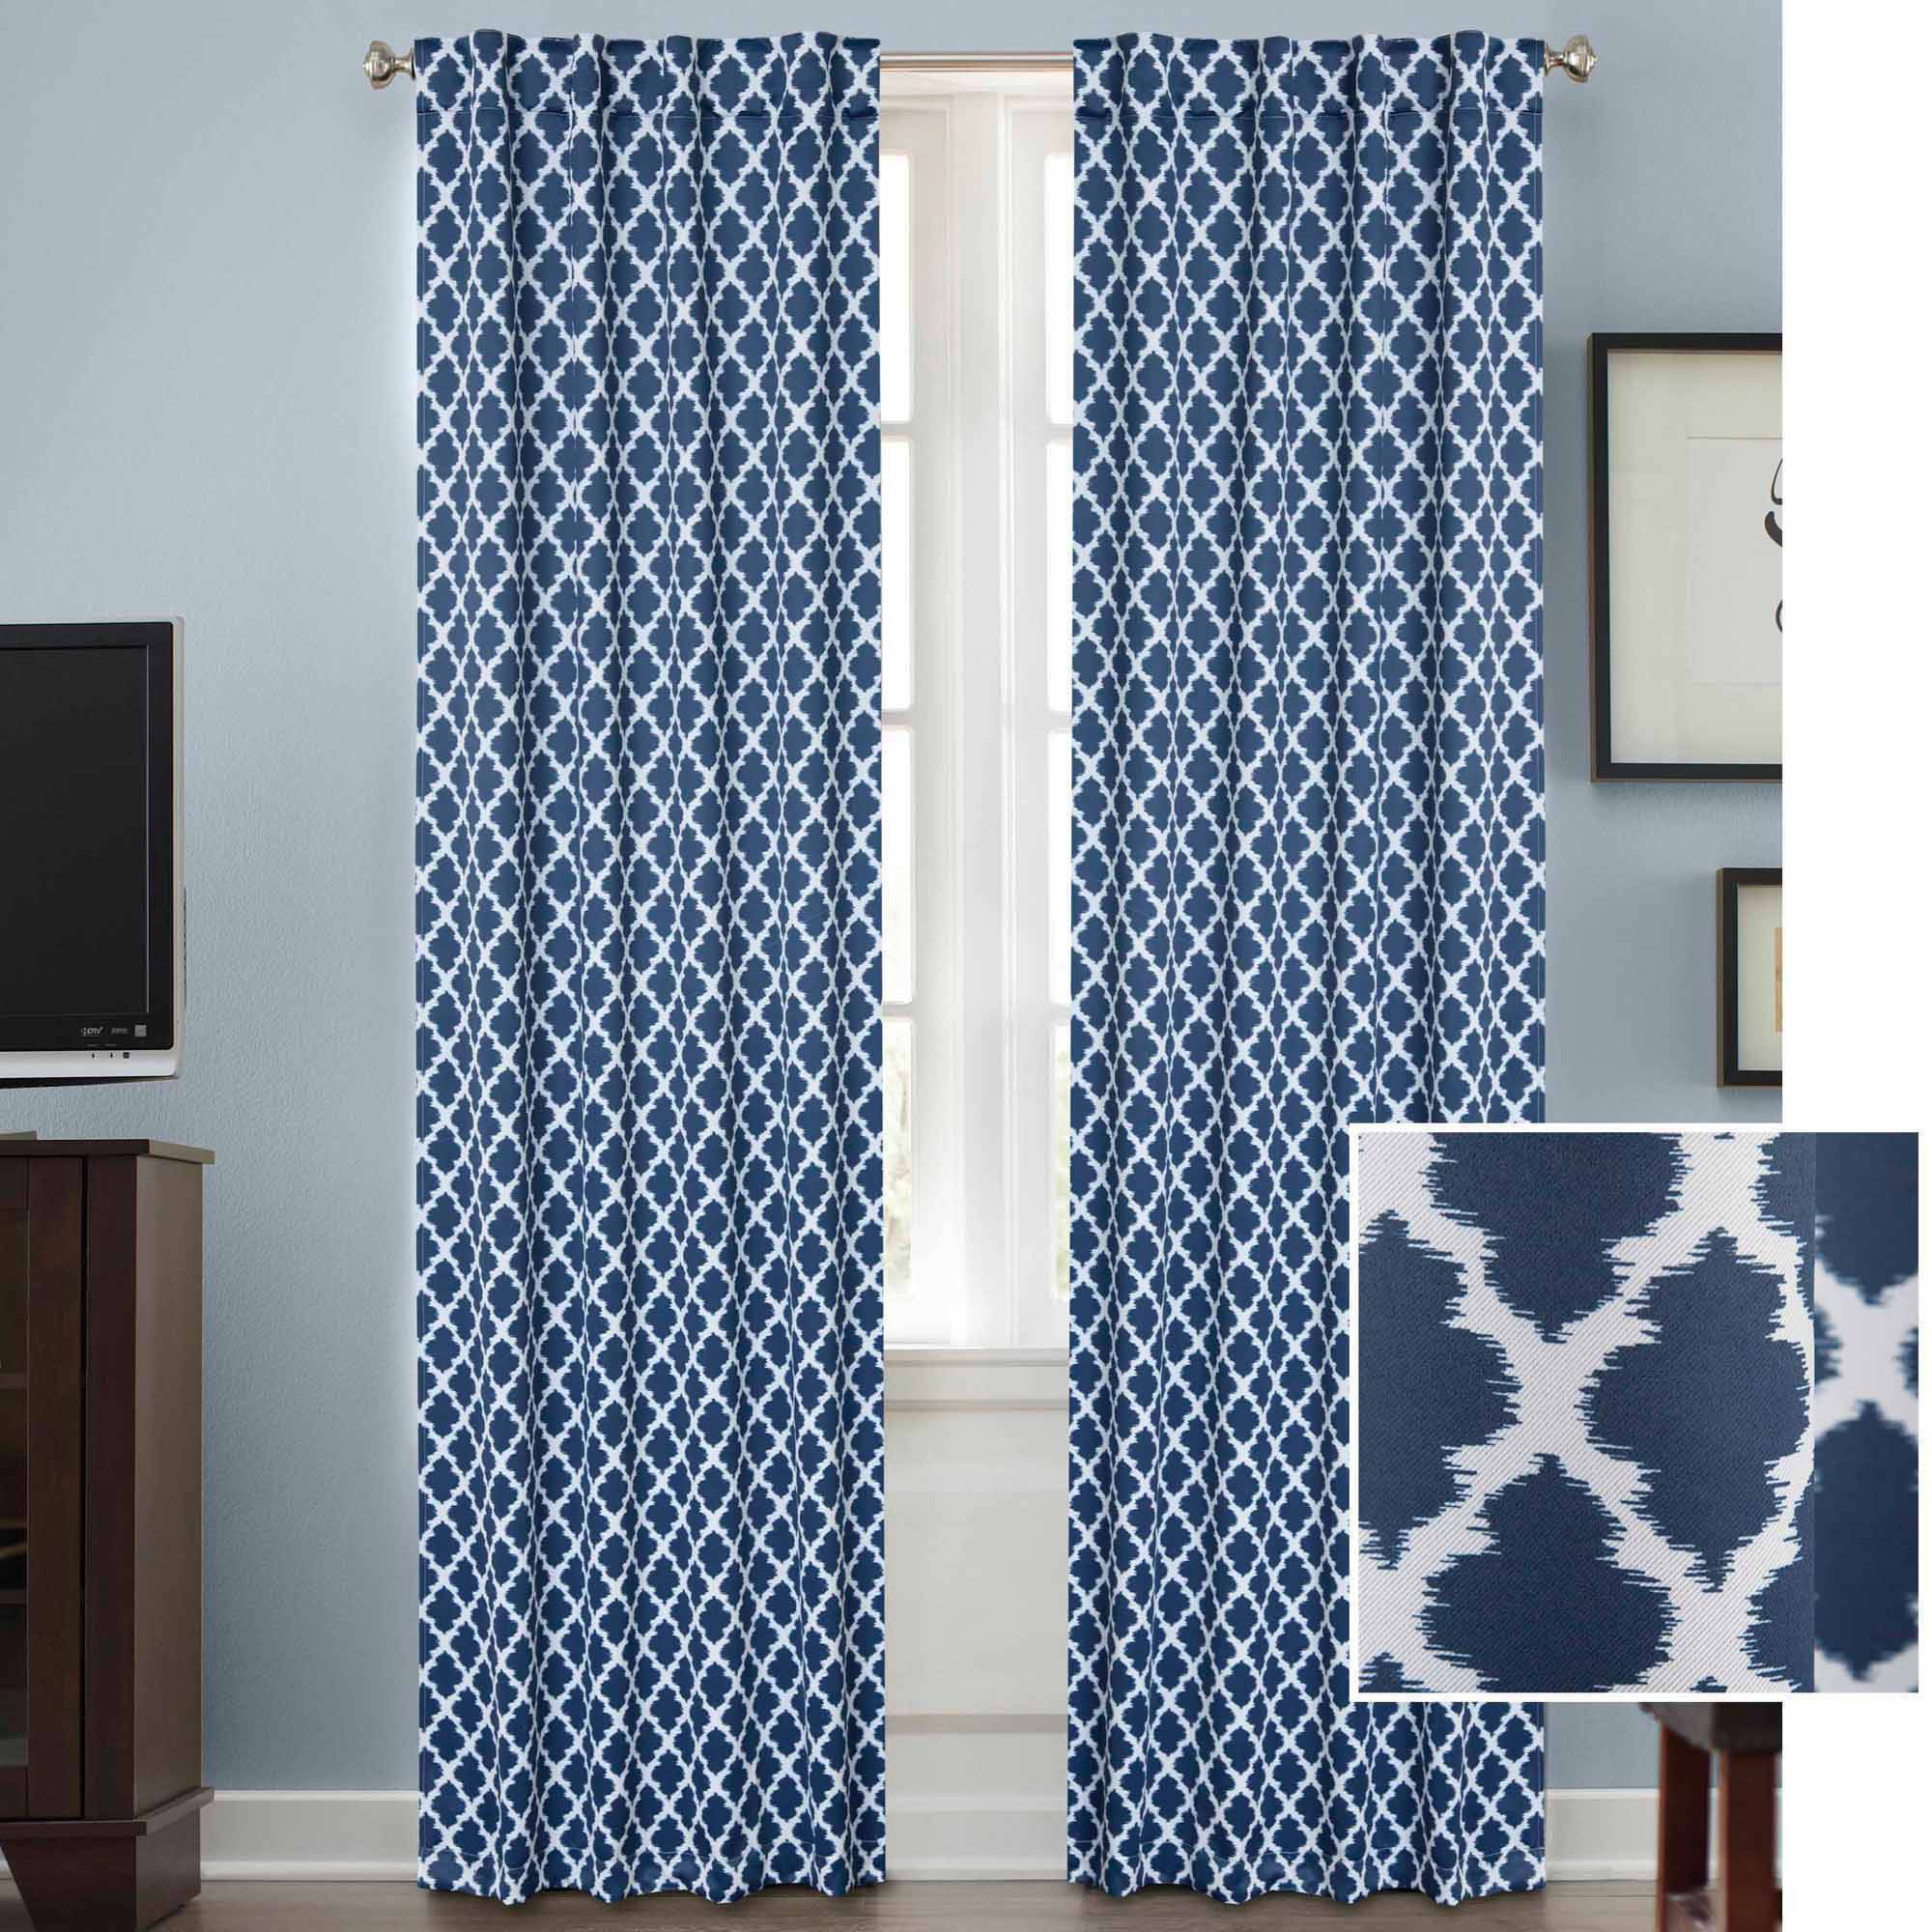 Better Homes and Gardens Tangier Thermal 99 Percent Light Blocking Curtain Panel